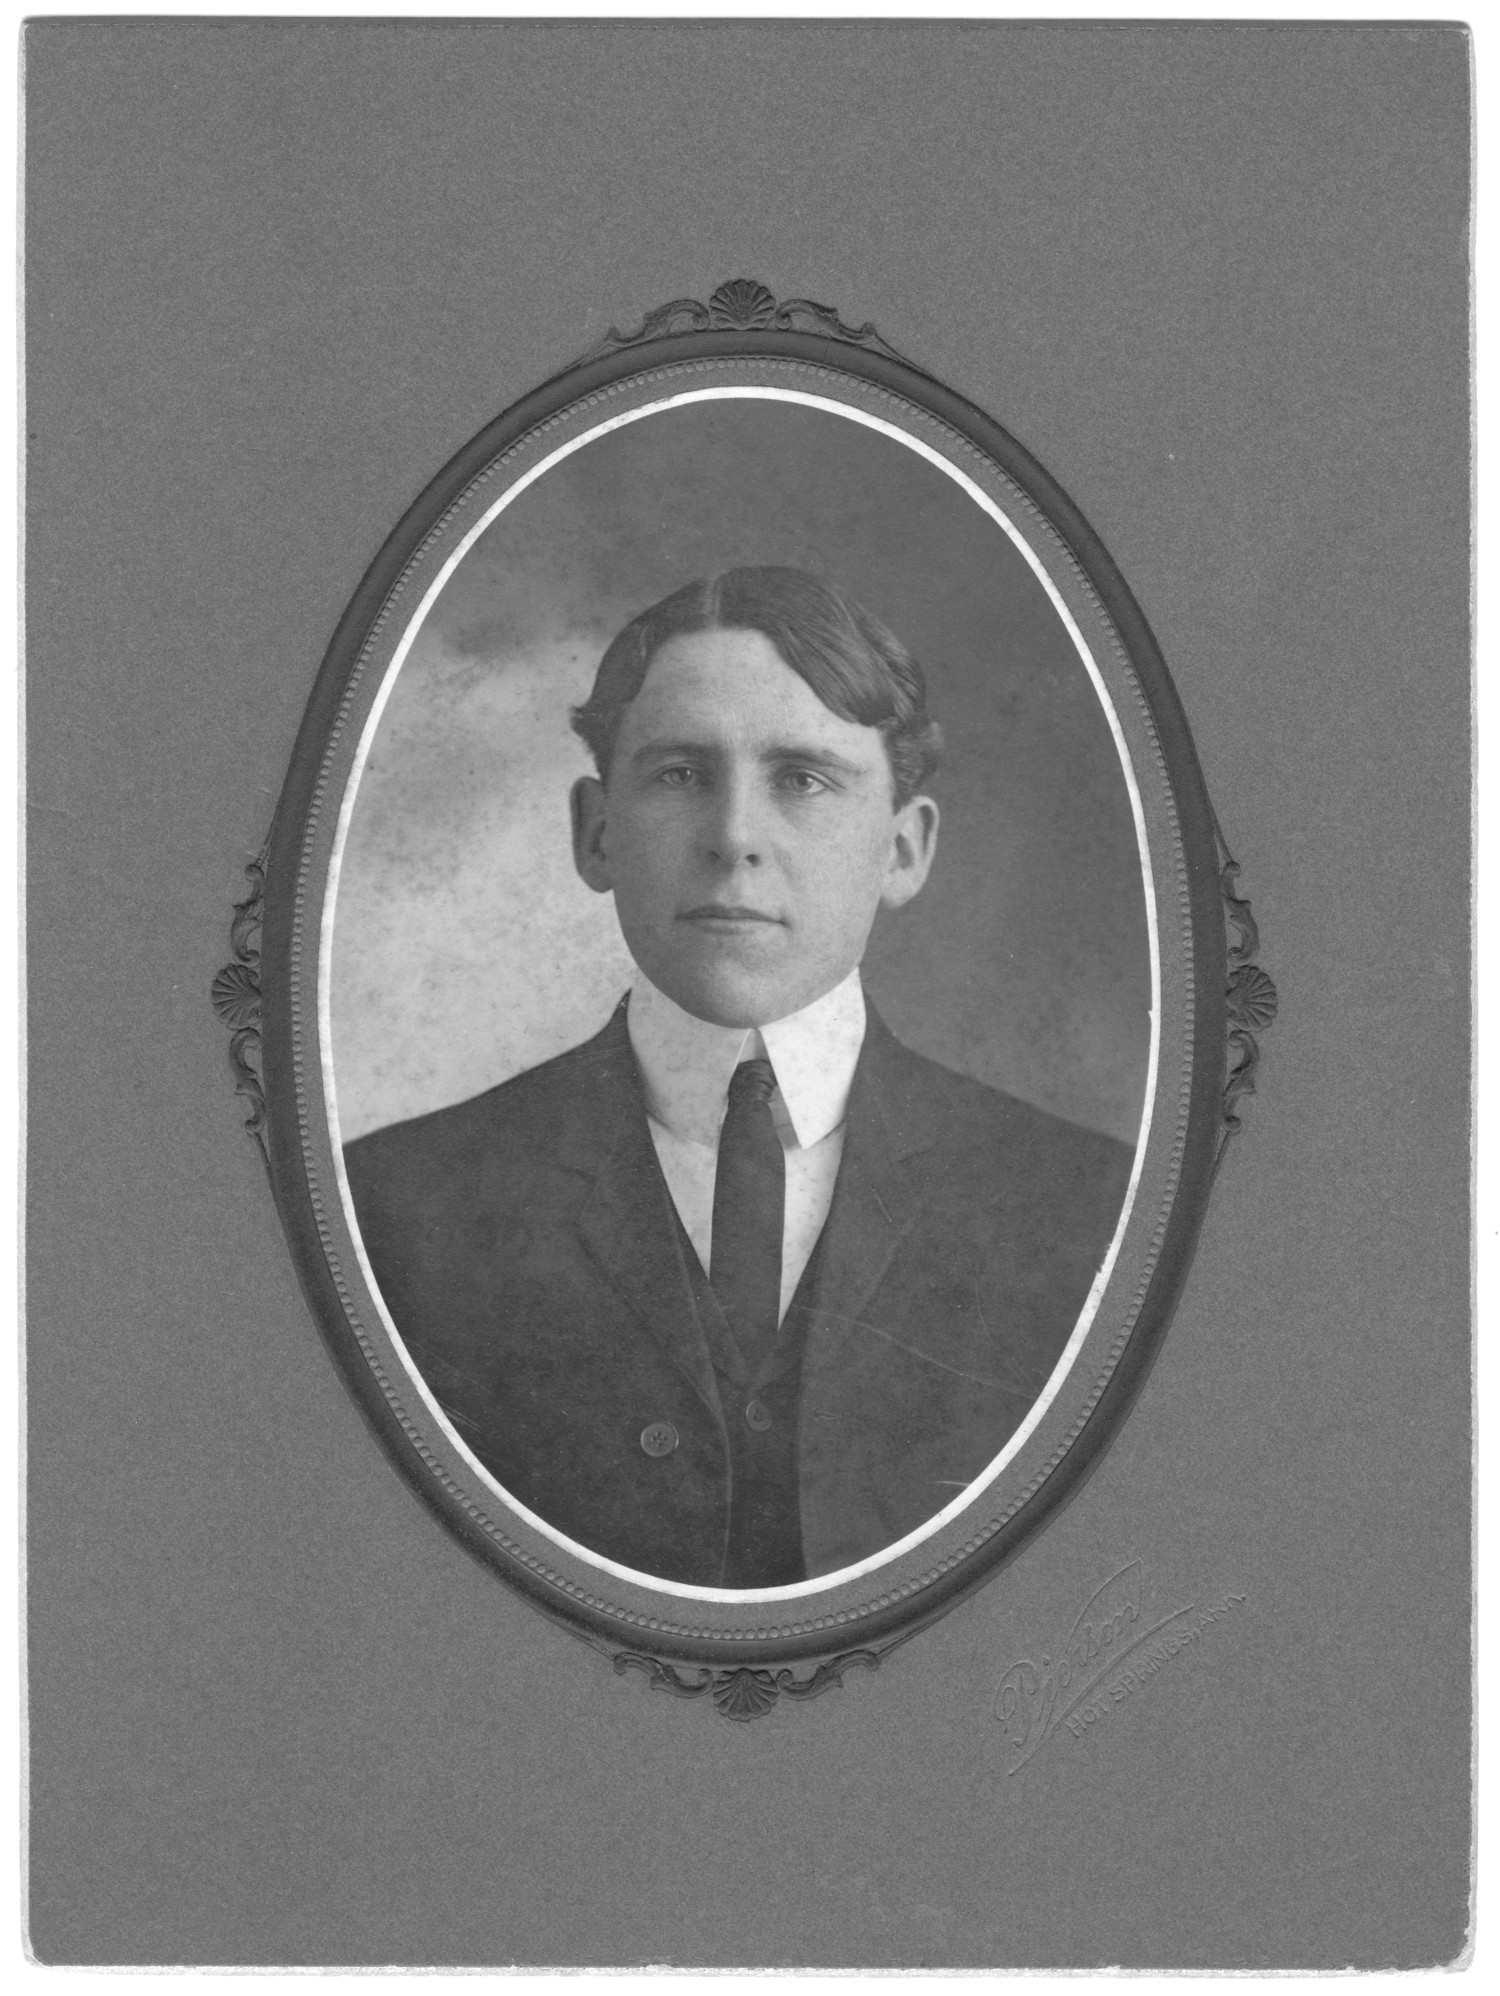 [James McKay Lykes oval portrait, black and white], Formal oval portrait of James McKay Lykes in his early 20s, wearing a suit and a tie.,